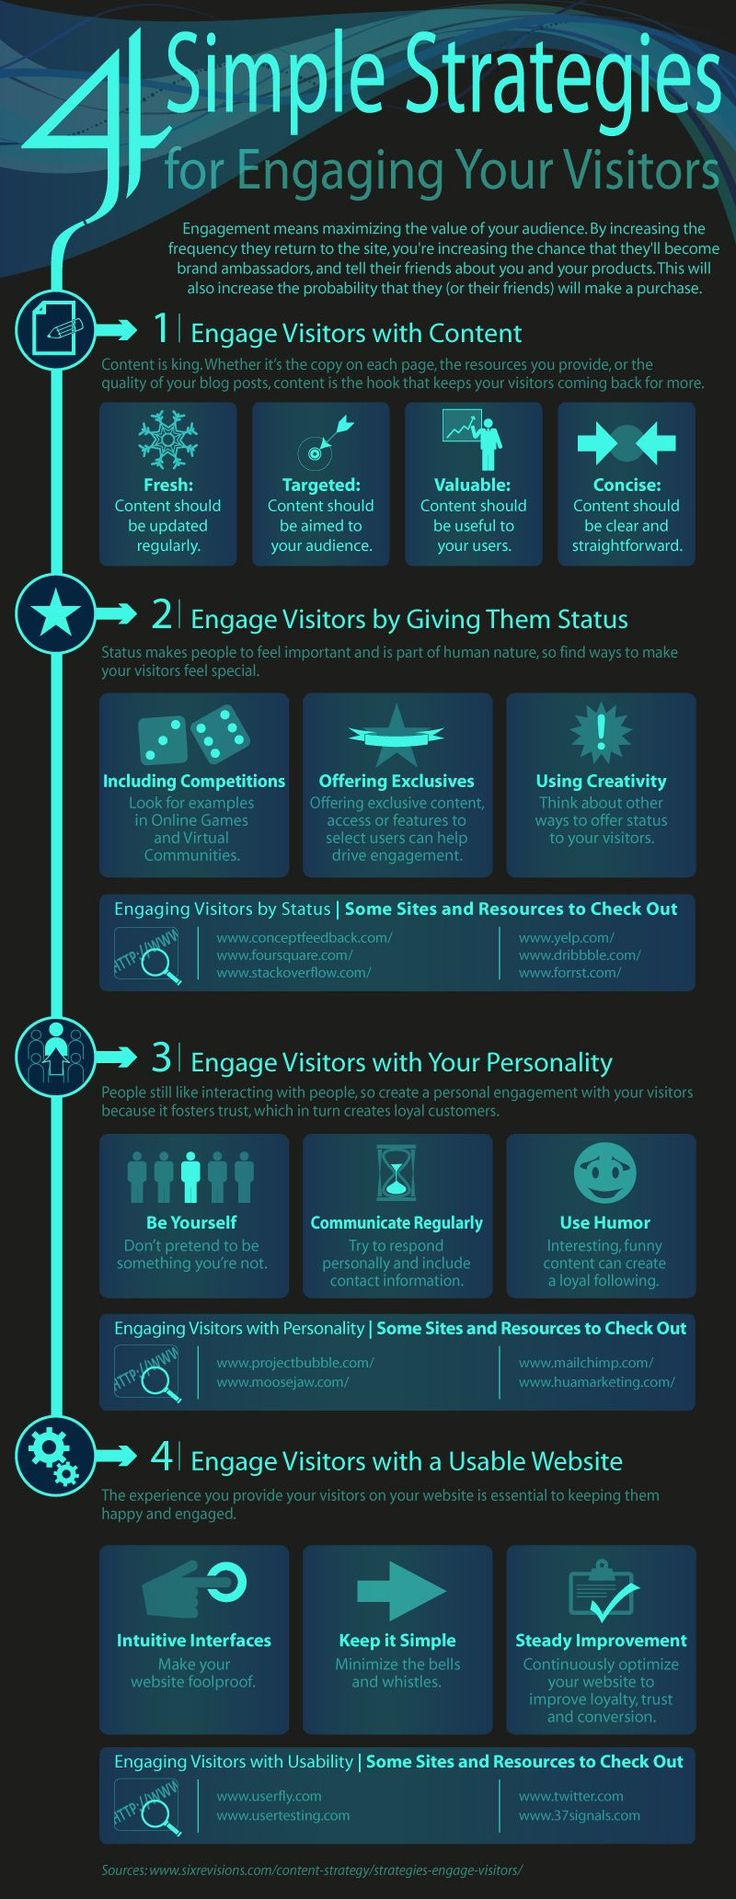 4 simple strategies to engage your visitors: Visitor Infographic, Digital Marketing, Simple Strategies, Social Media, Media Infographic, Website Visitor, Socialmedia, Visitor Infografía, Engagement